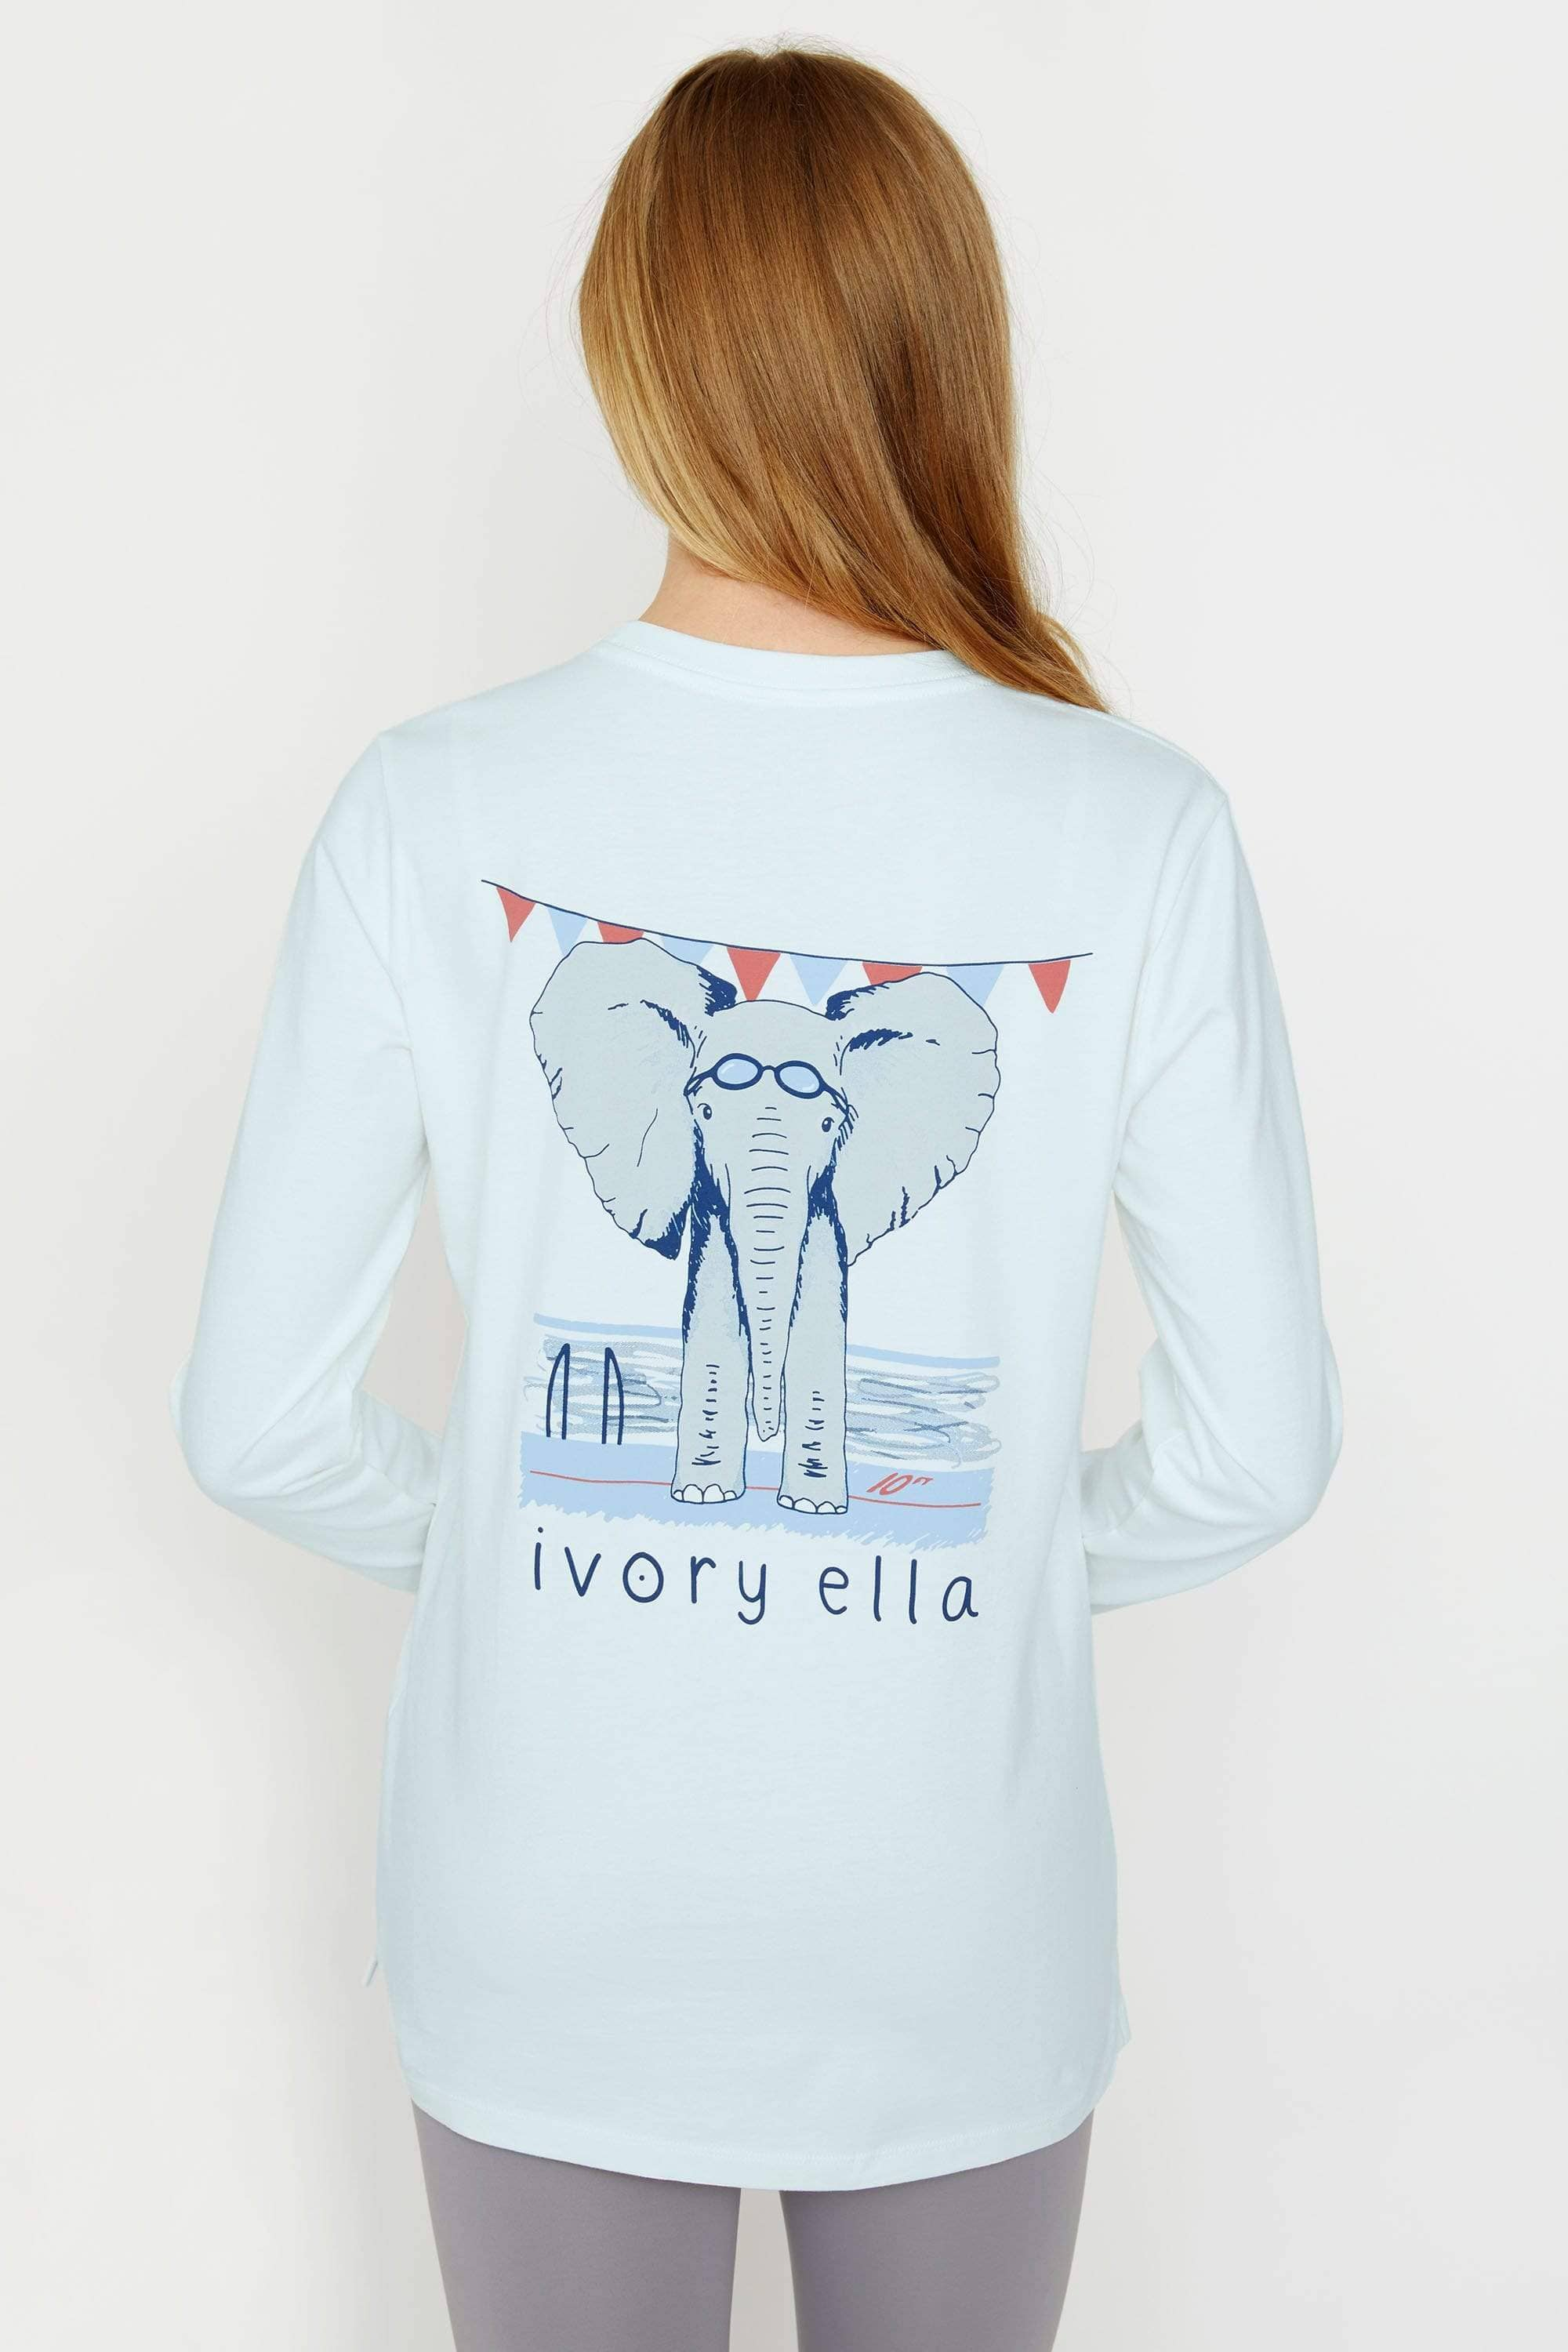 Ivory Ella Sports LS XXS Ella Fit Baby Blue Swimming Long Sleeve Tee